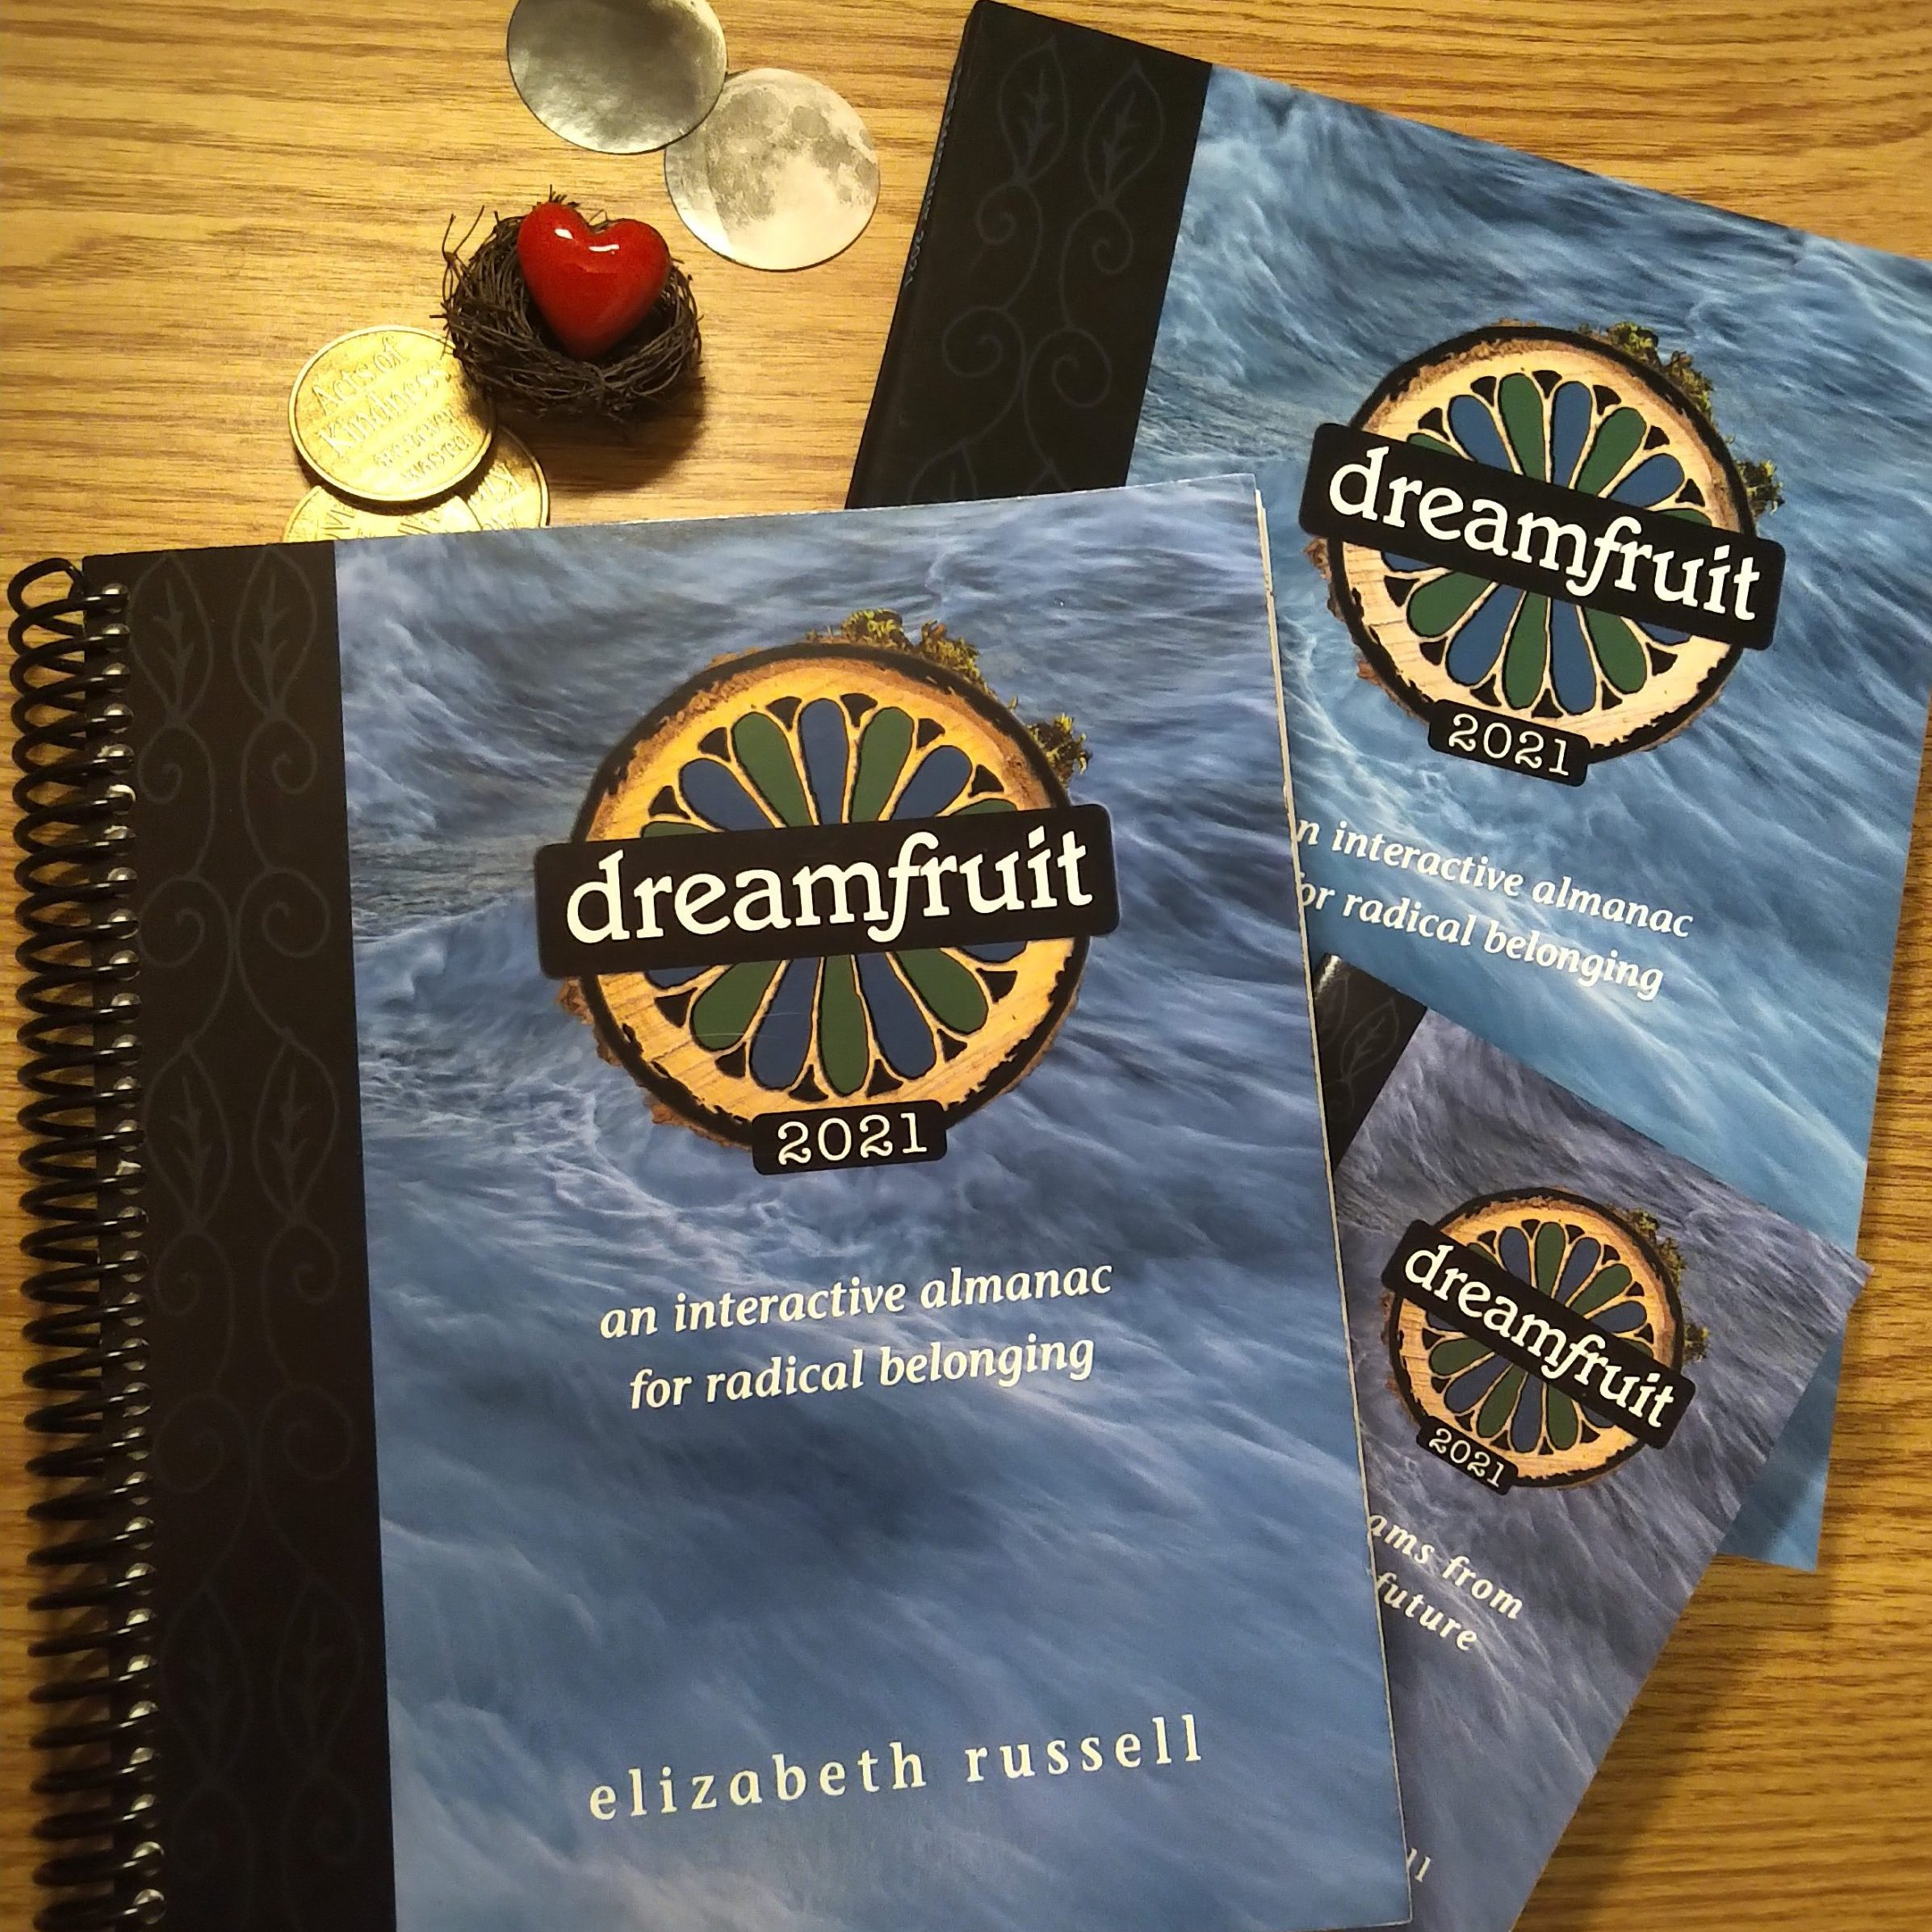 Dreamfruit 2021 books